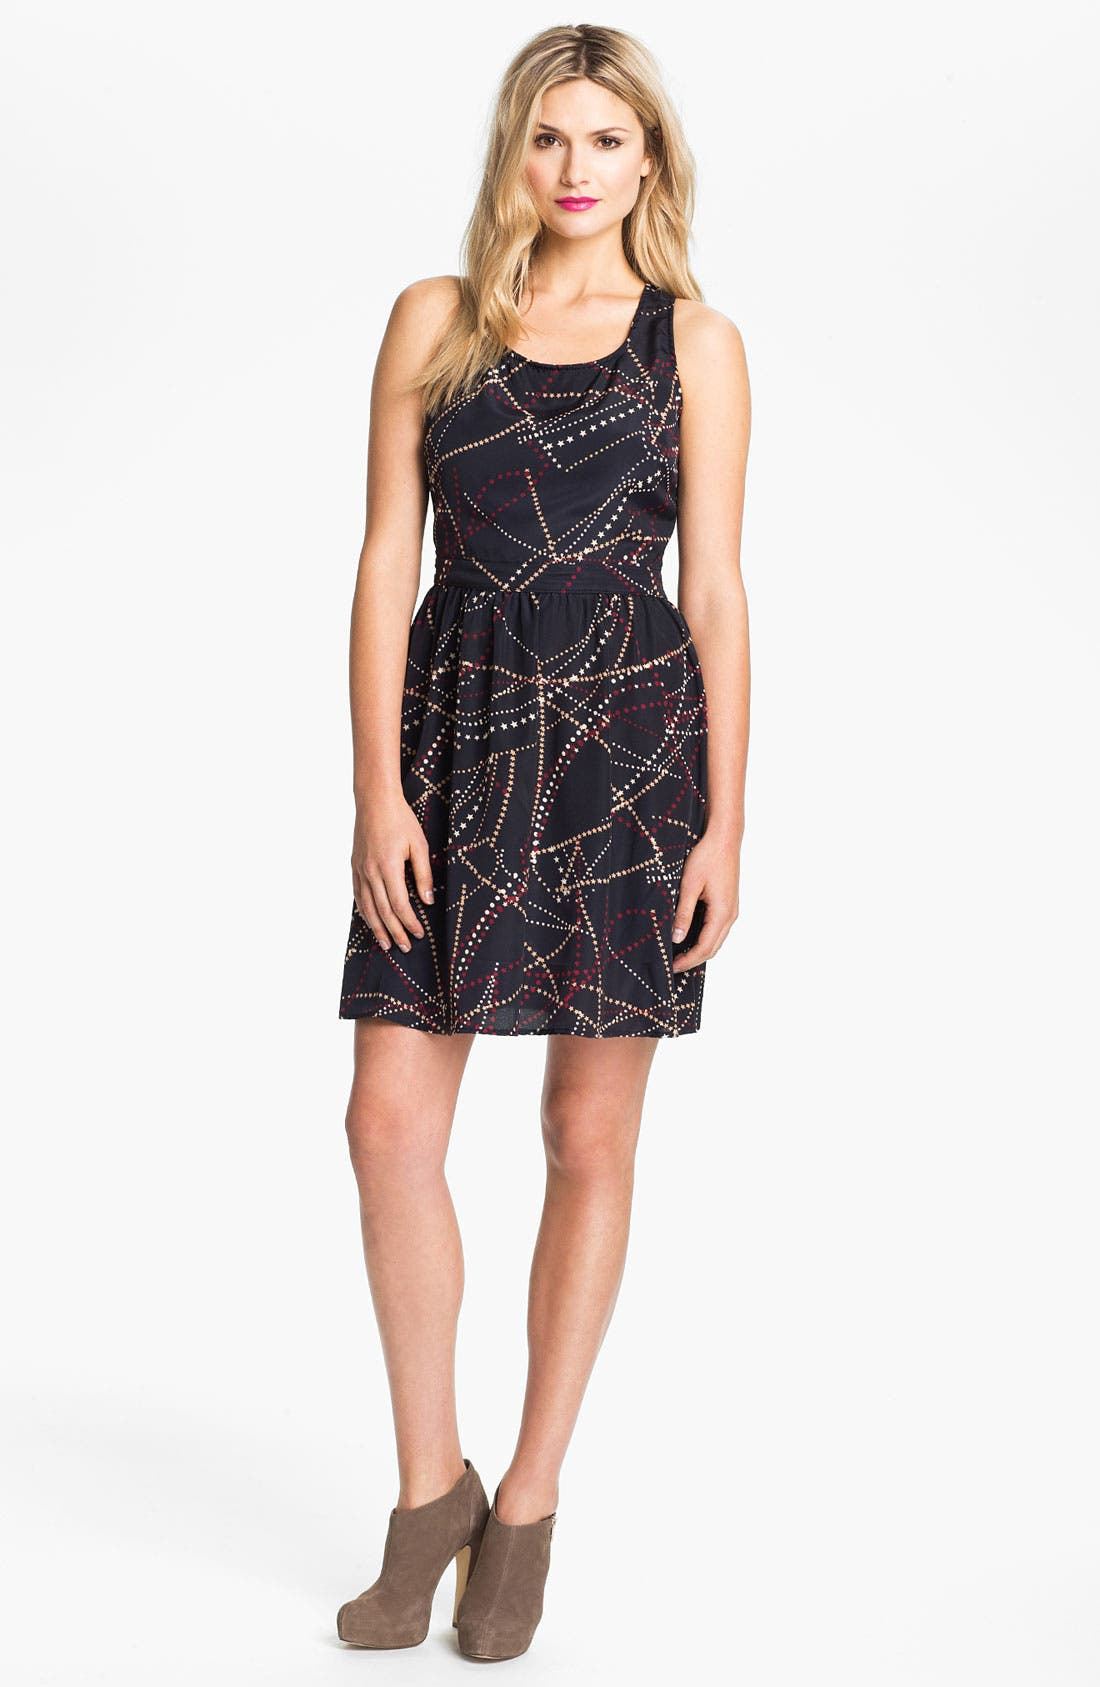 Alternate Image 1 Selected - Max & Mia Banded Back Print Dress (Online Exclusive)